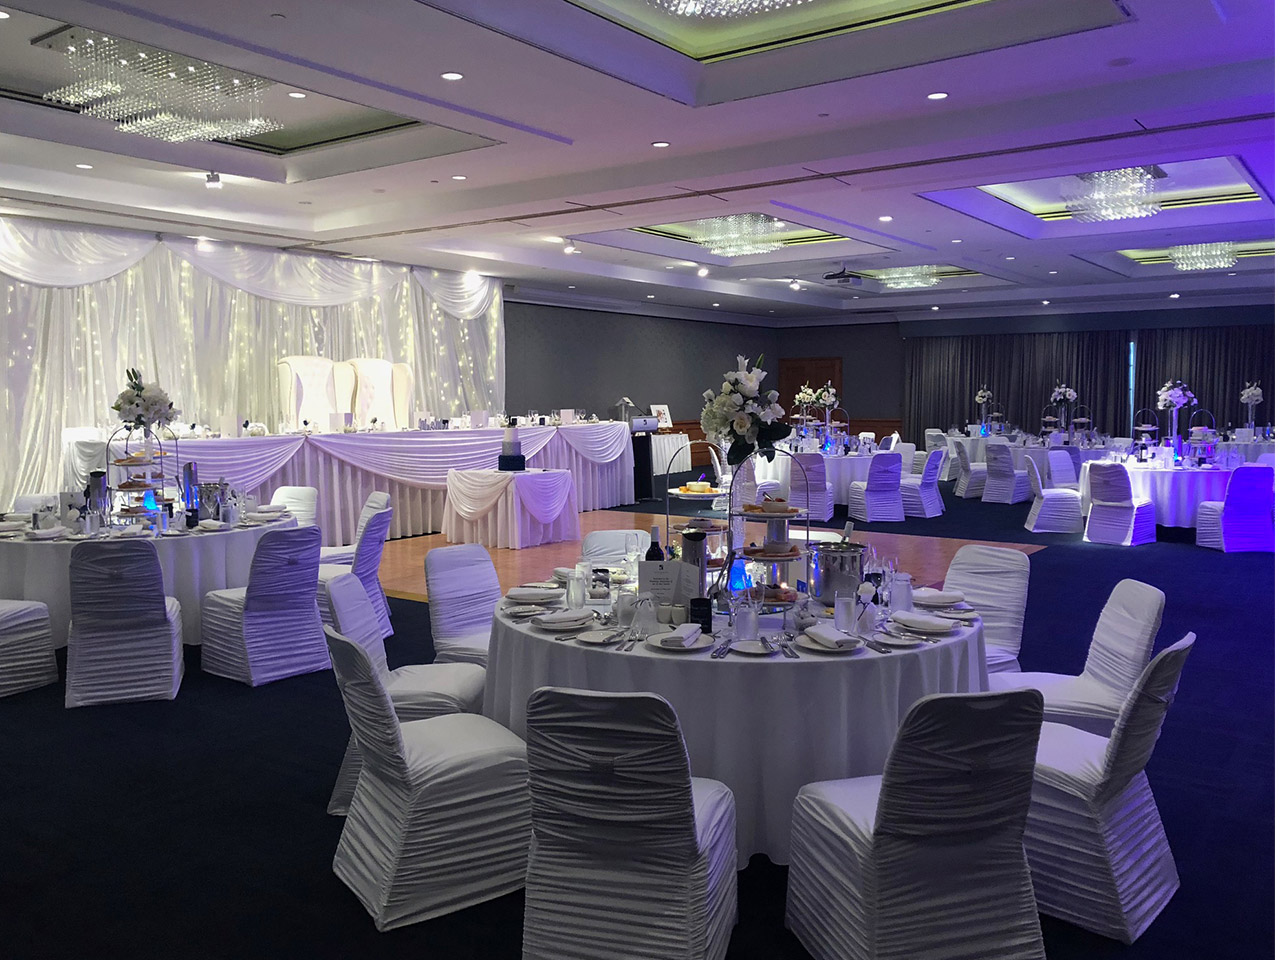 Chairs And Tables In Banquet Style With Stage Floor And A Long Presidential Table Inside The Function Room